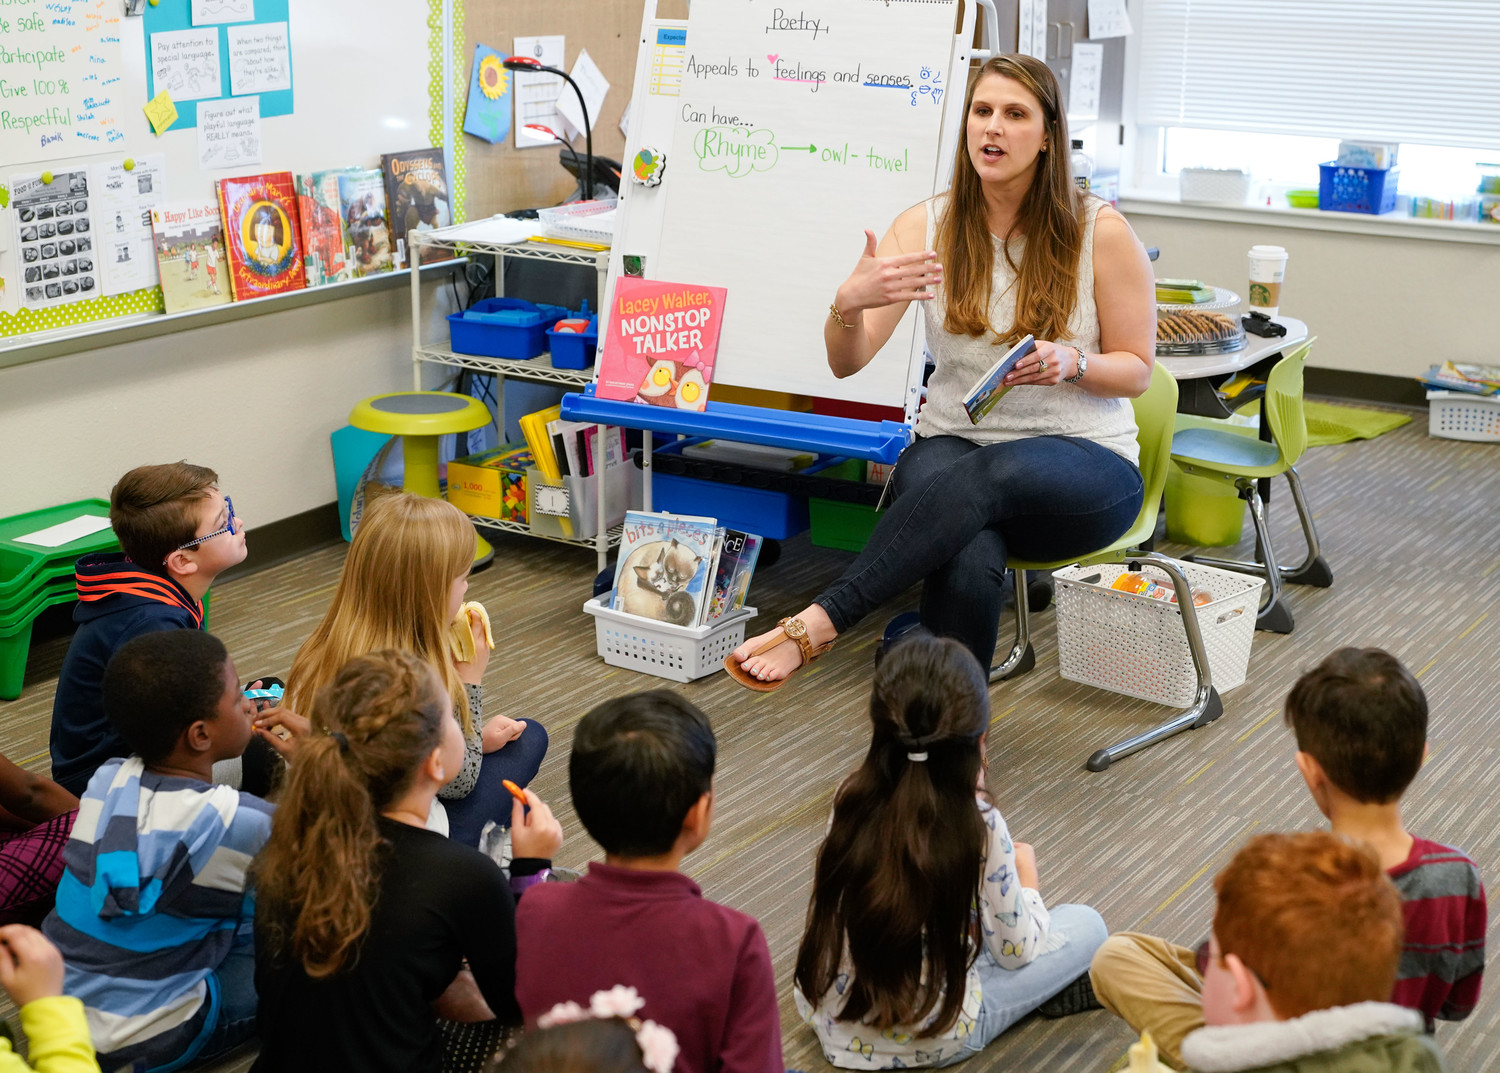 Allie Duffy reads to her class at Joe Lee Johnson Elementary. Duffy was named the Rising Star teacher in the elementary category at the H-E-B Excellence in Education Awards ceremony in Houston on May 6.